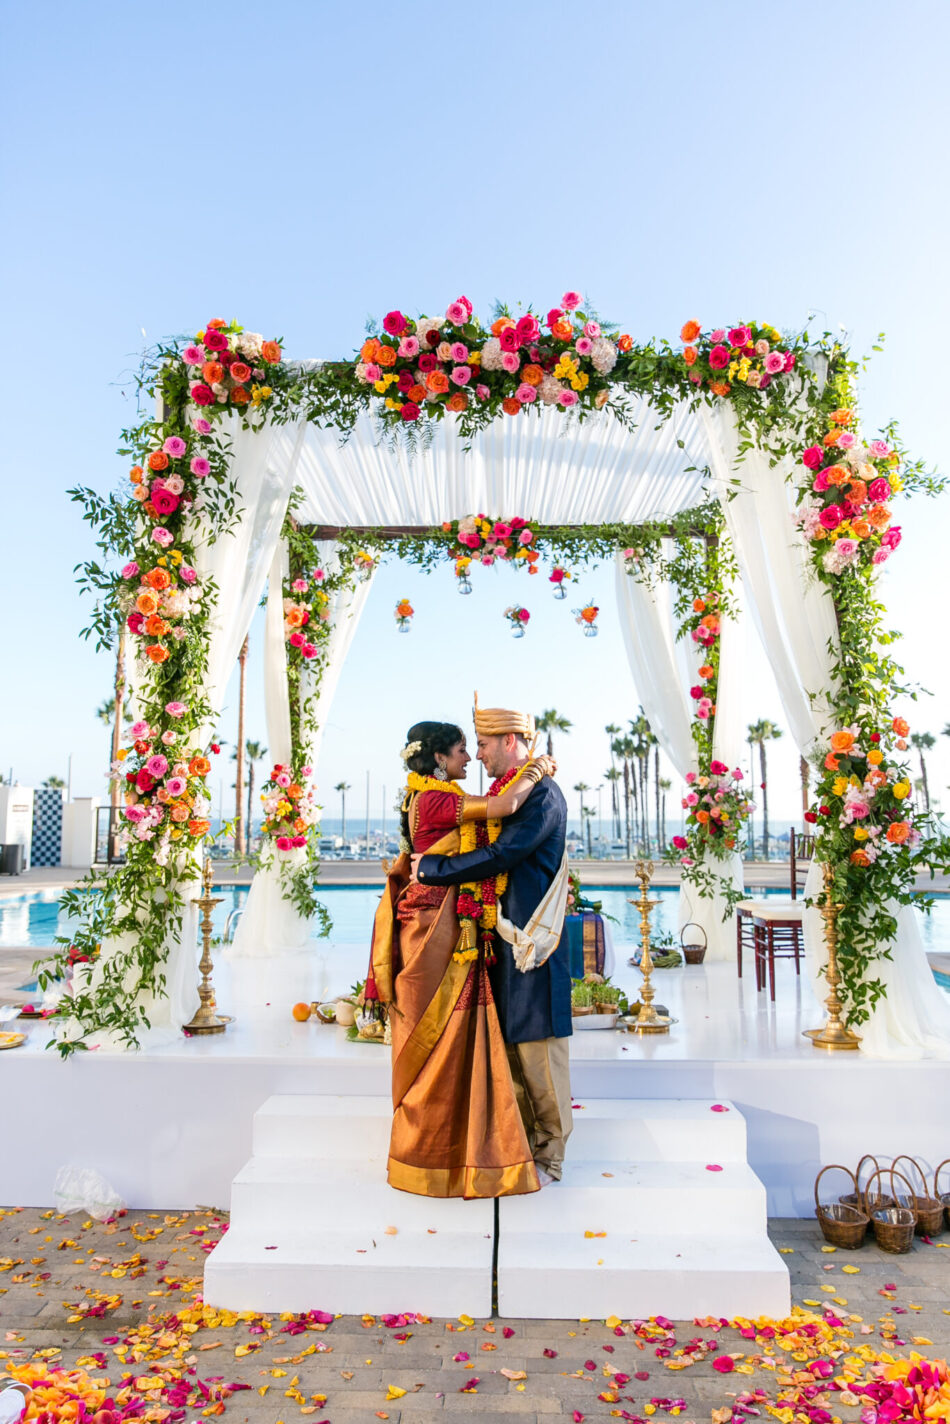 indian wedding, colorful ceremony arch, stunning vibrant wedding, floral design, florist, wedding florist, wedding flowers, orange county weddings, orange county wedding florist, orange county florist, orange county floral design, flowers by cina